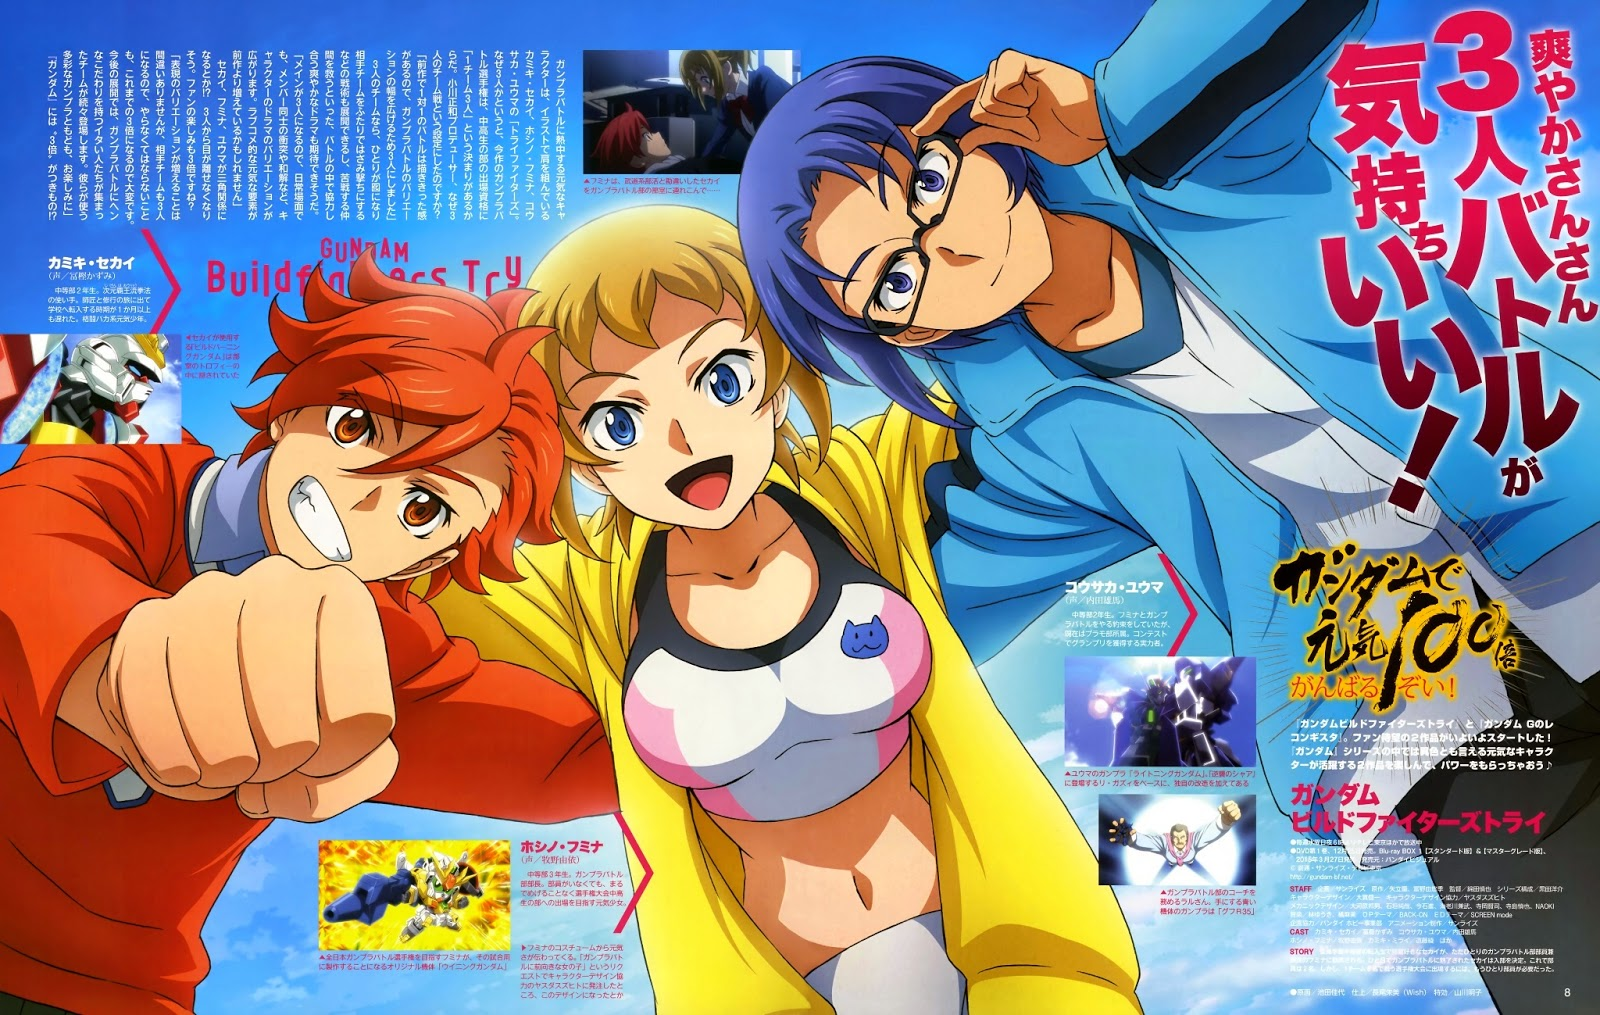 Gundam Build Fighters Try Build Burning Gundam Wallpaper Shortly After The Arista That